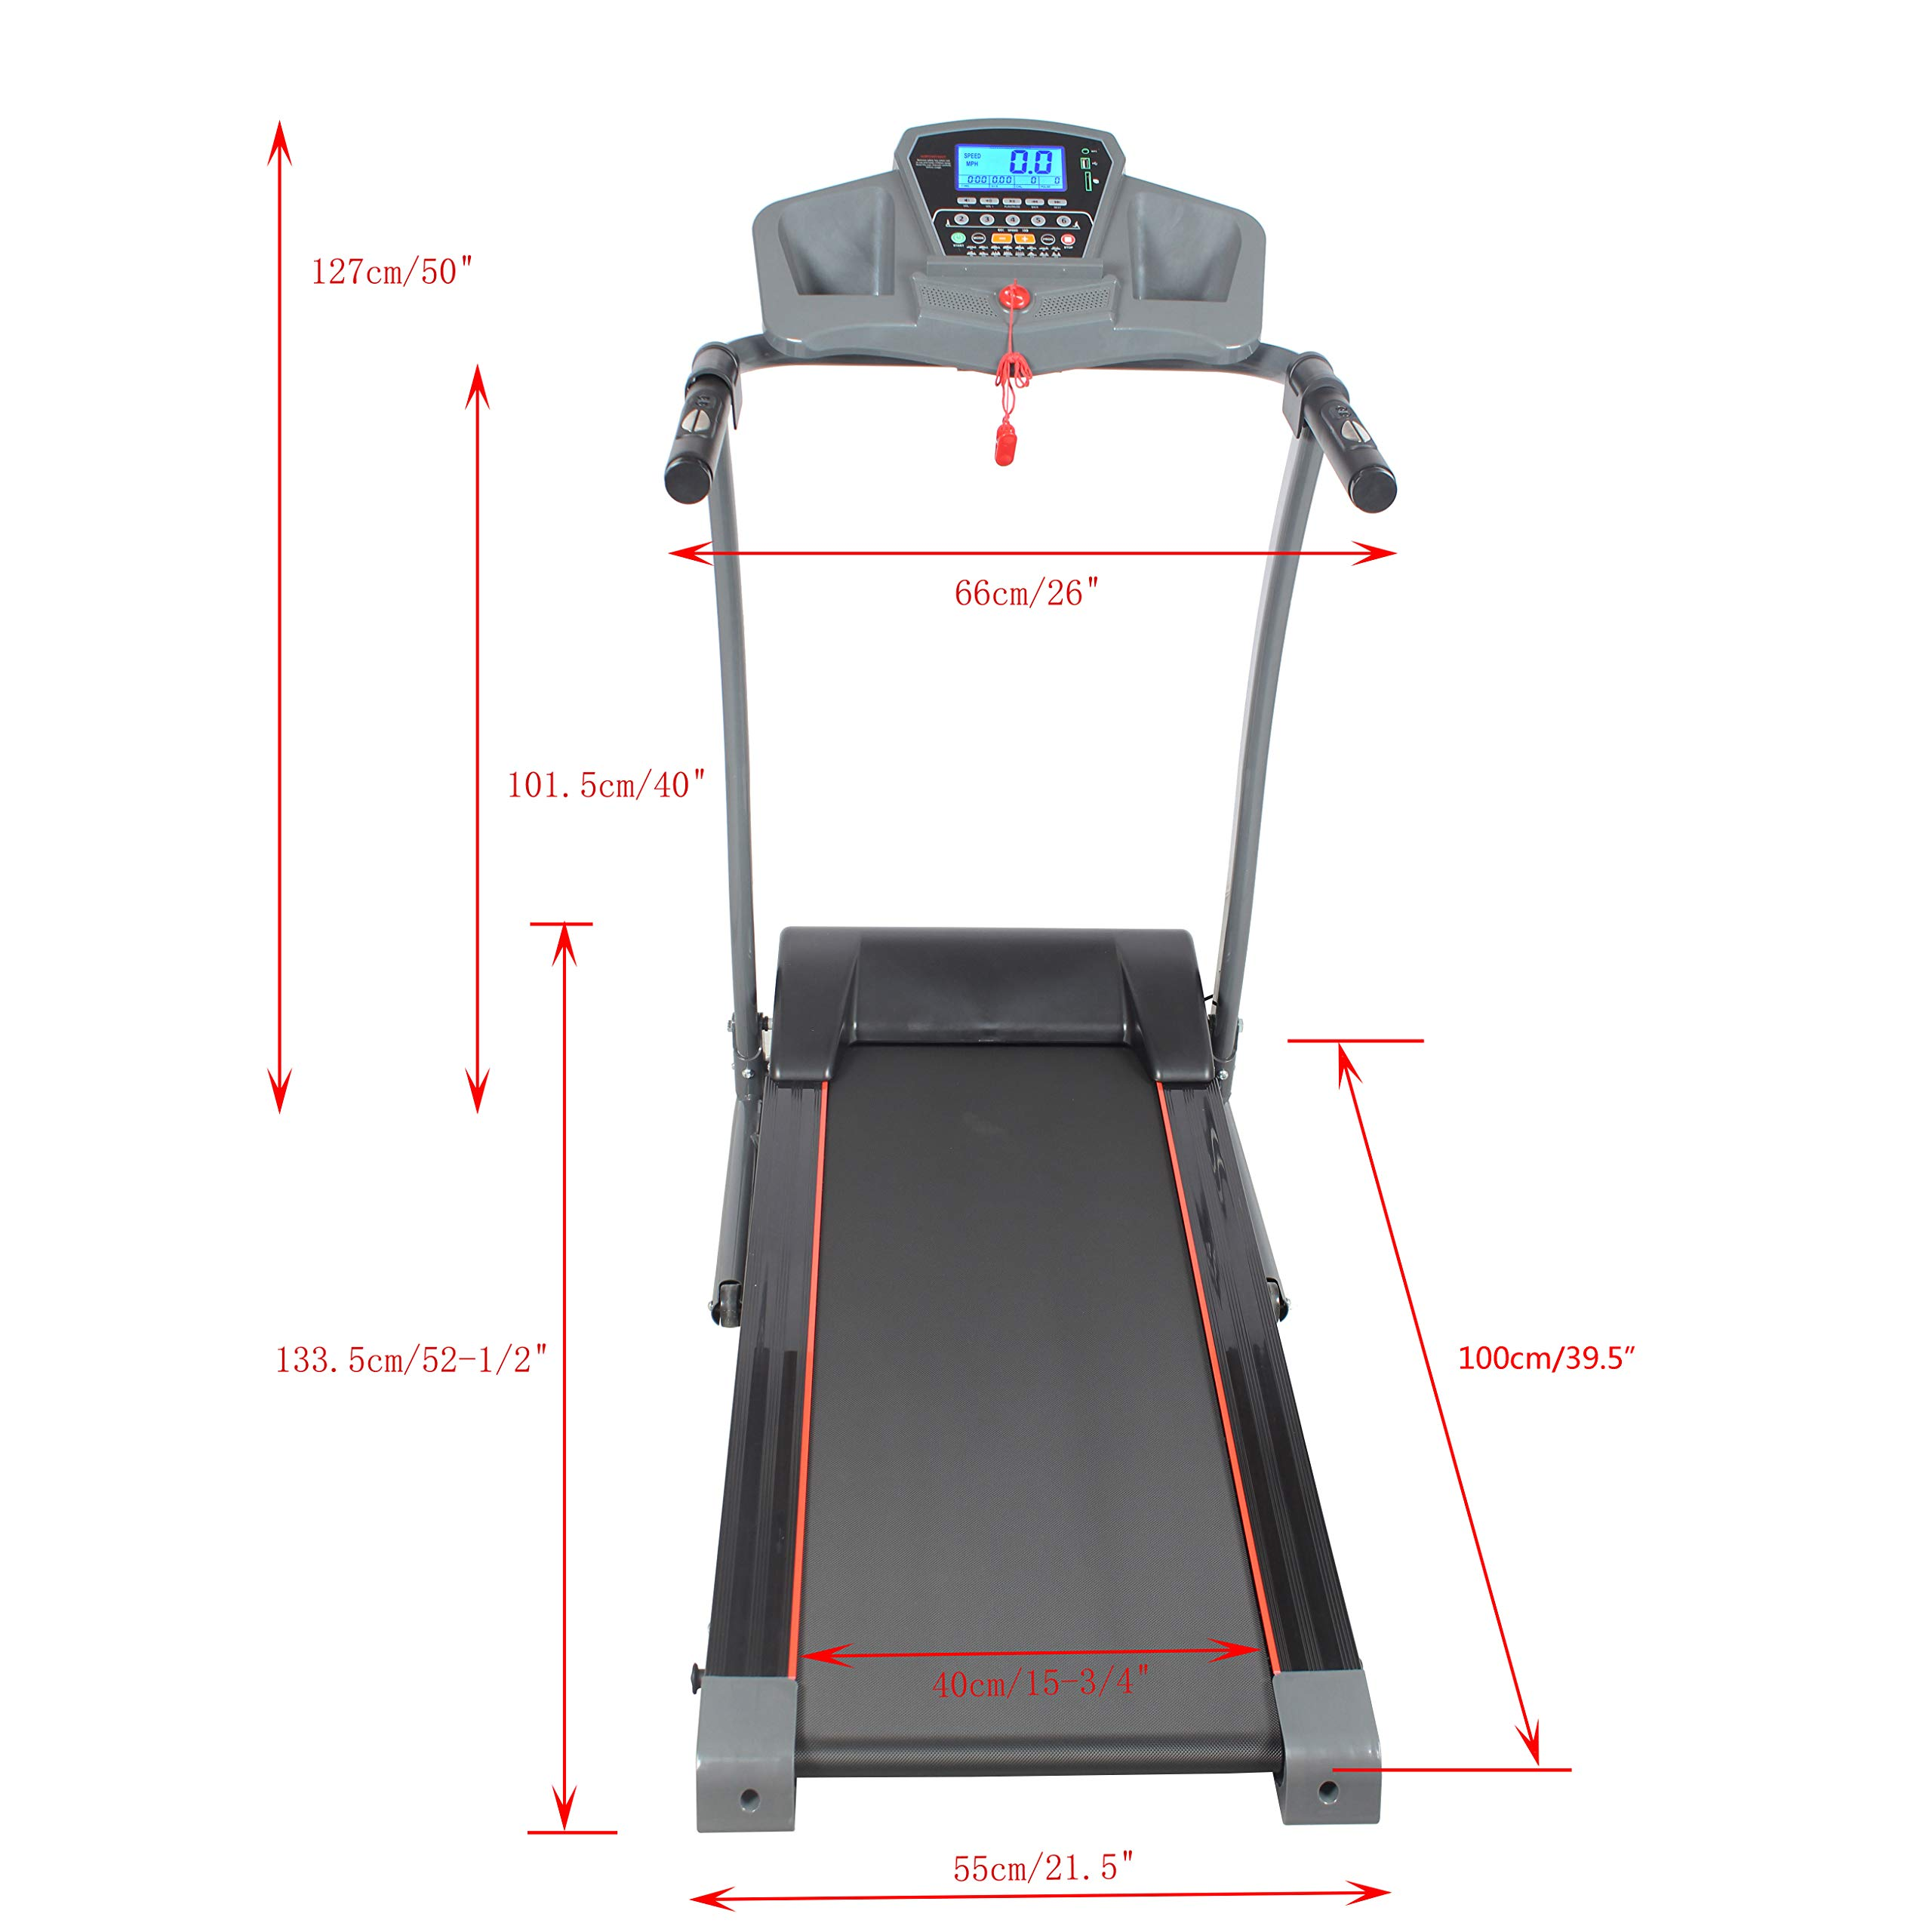 GOJOOASIS 2.0HP Treadmill Folding Motorized Running Exercise Machine w/Incline by GOJOOASIS (Image #3)